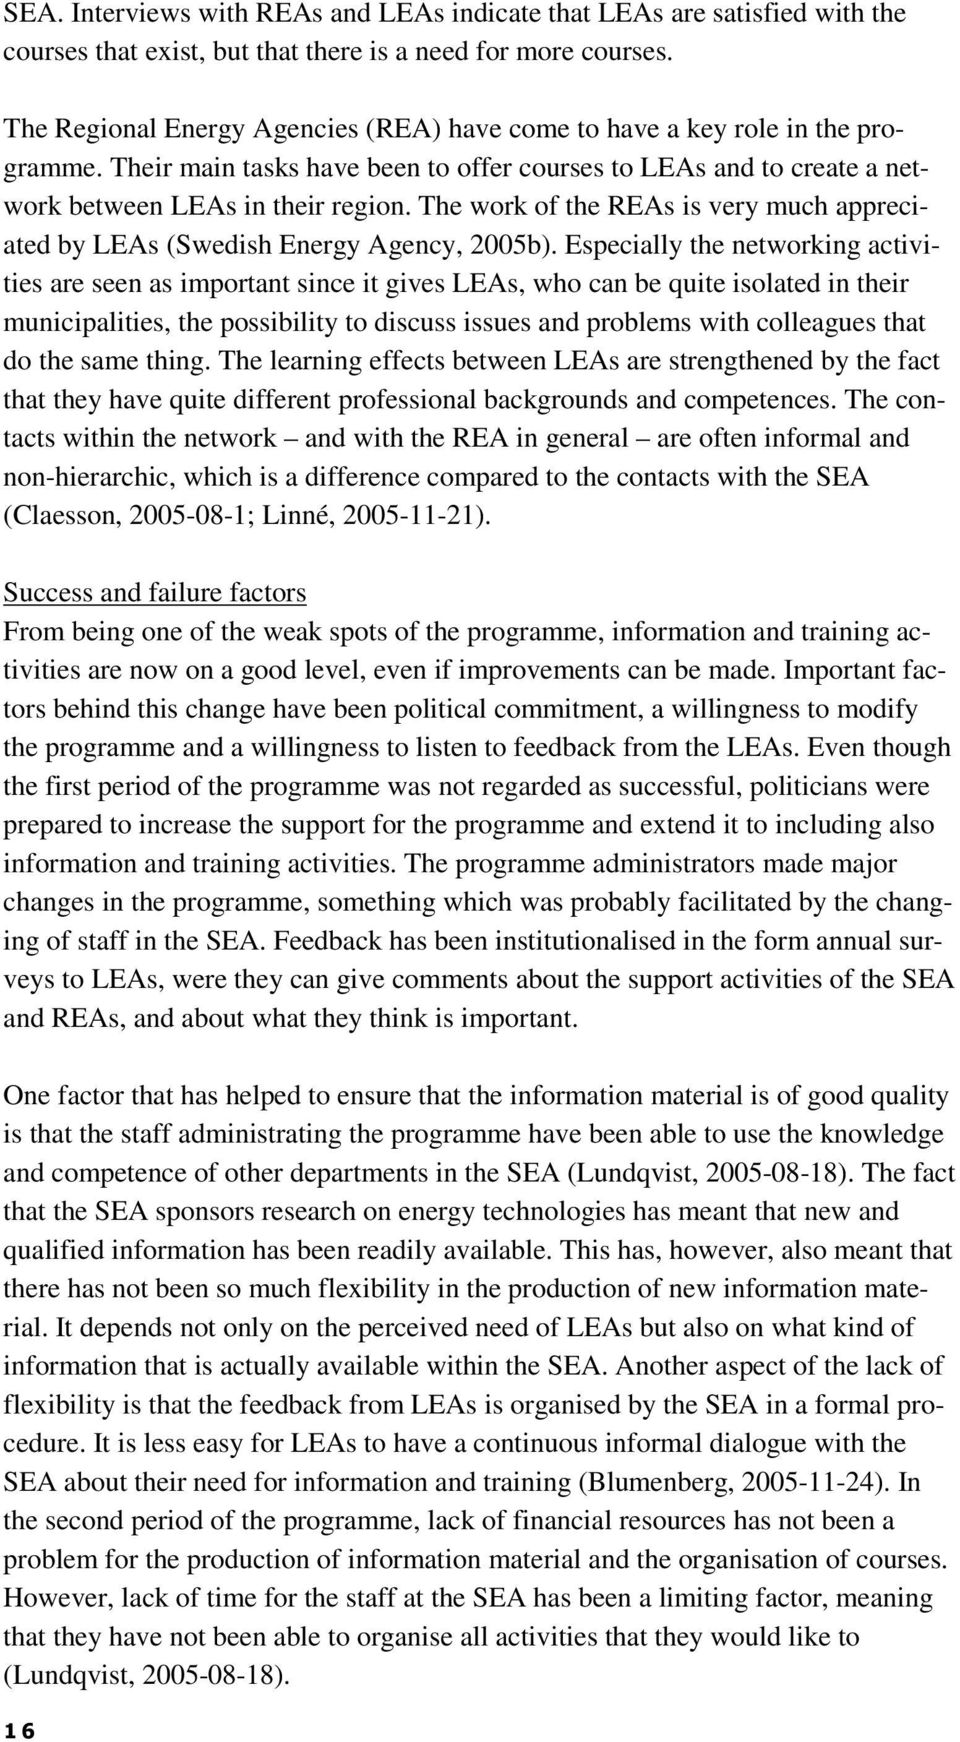 The work of the REAs is very much appreciated by LEAs (Swedish Energy Agency, 2005b).